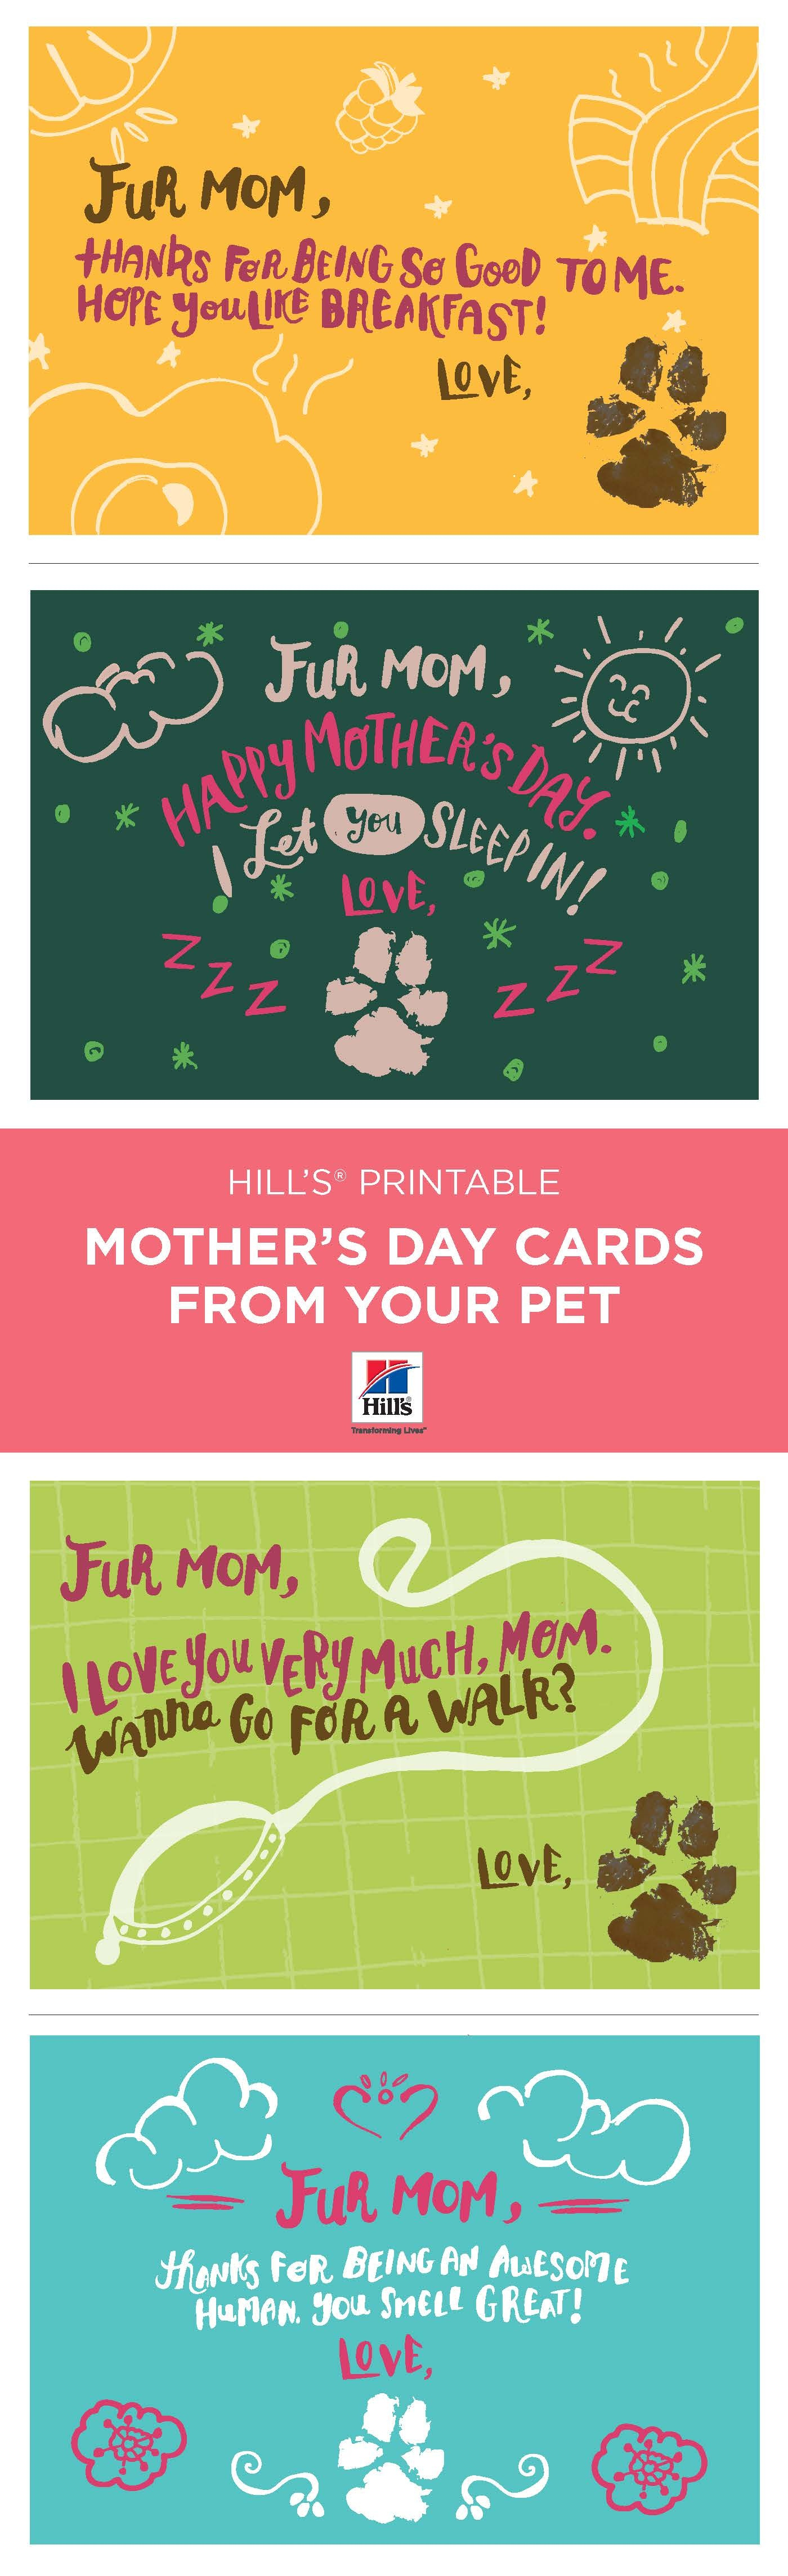 Mother's Day | Things We Love | Dog Mom, Mothers Day Cards, Dogs - Free Printable Mothers Day Cards From The Dog